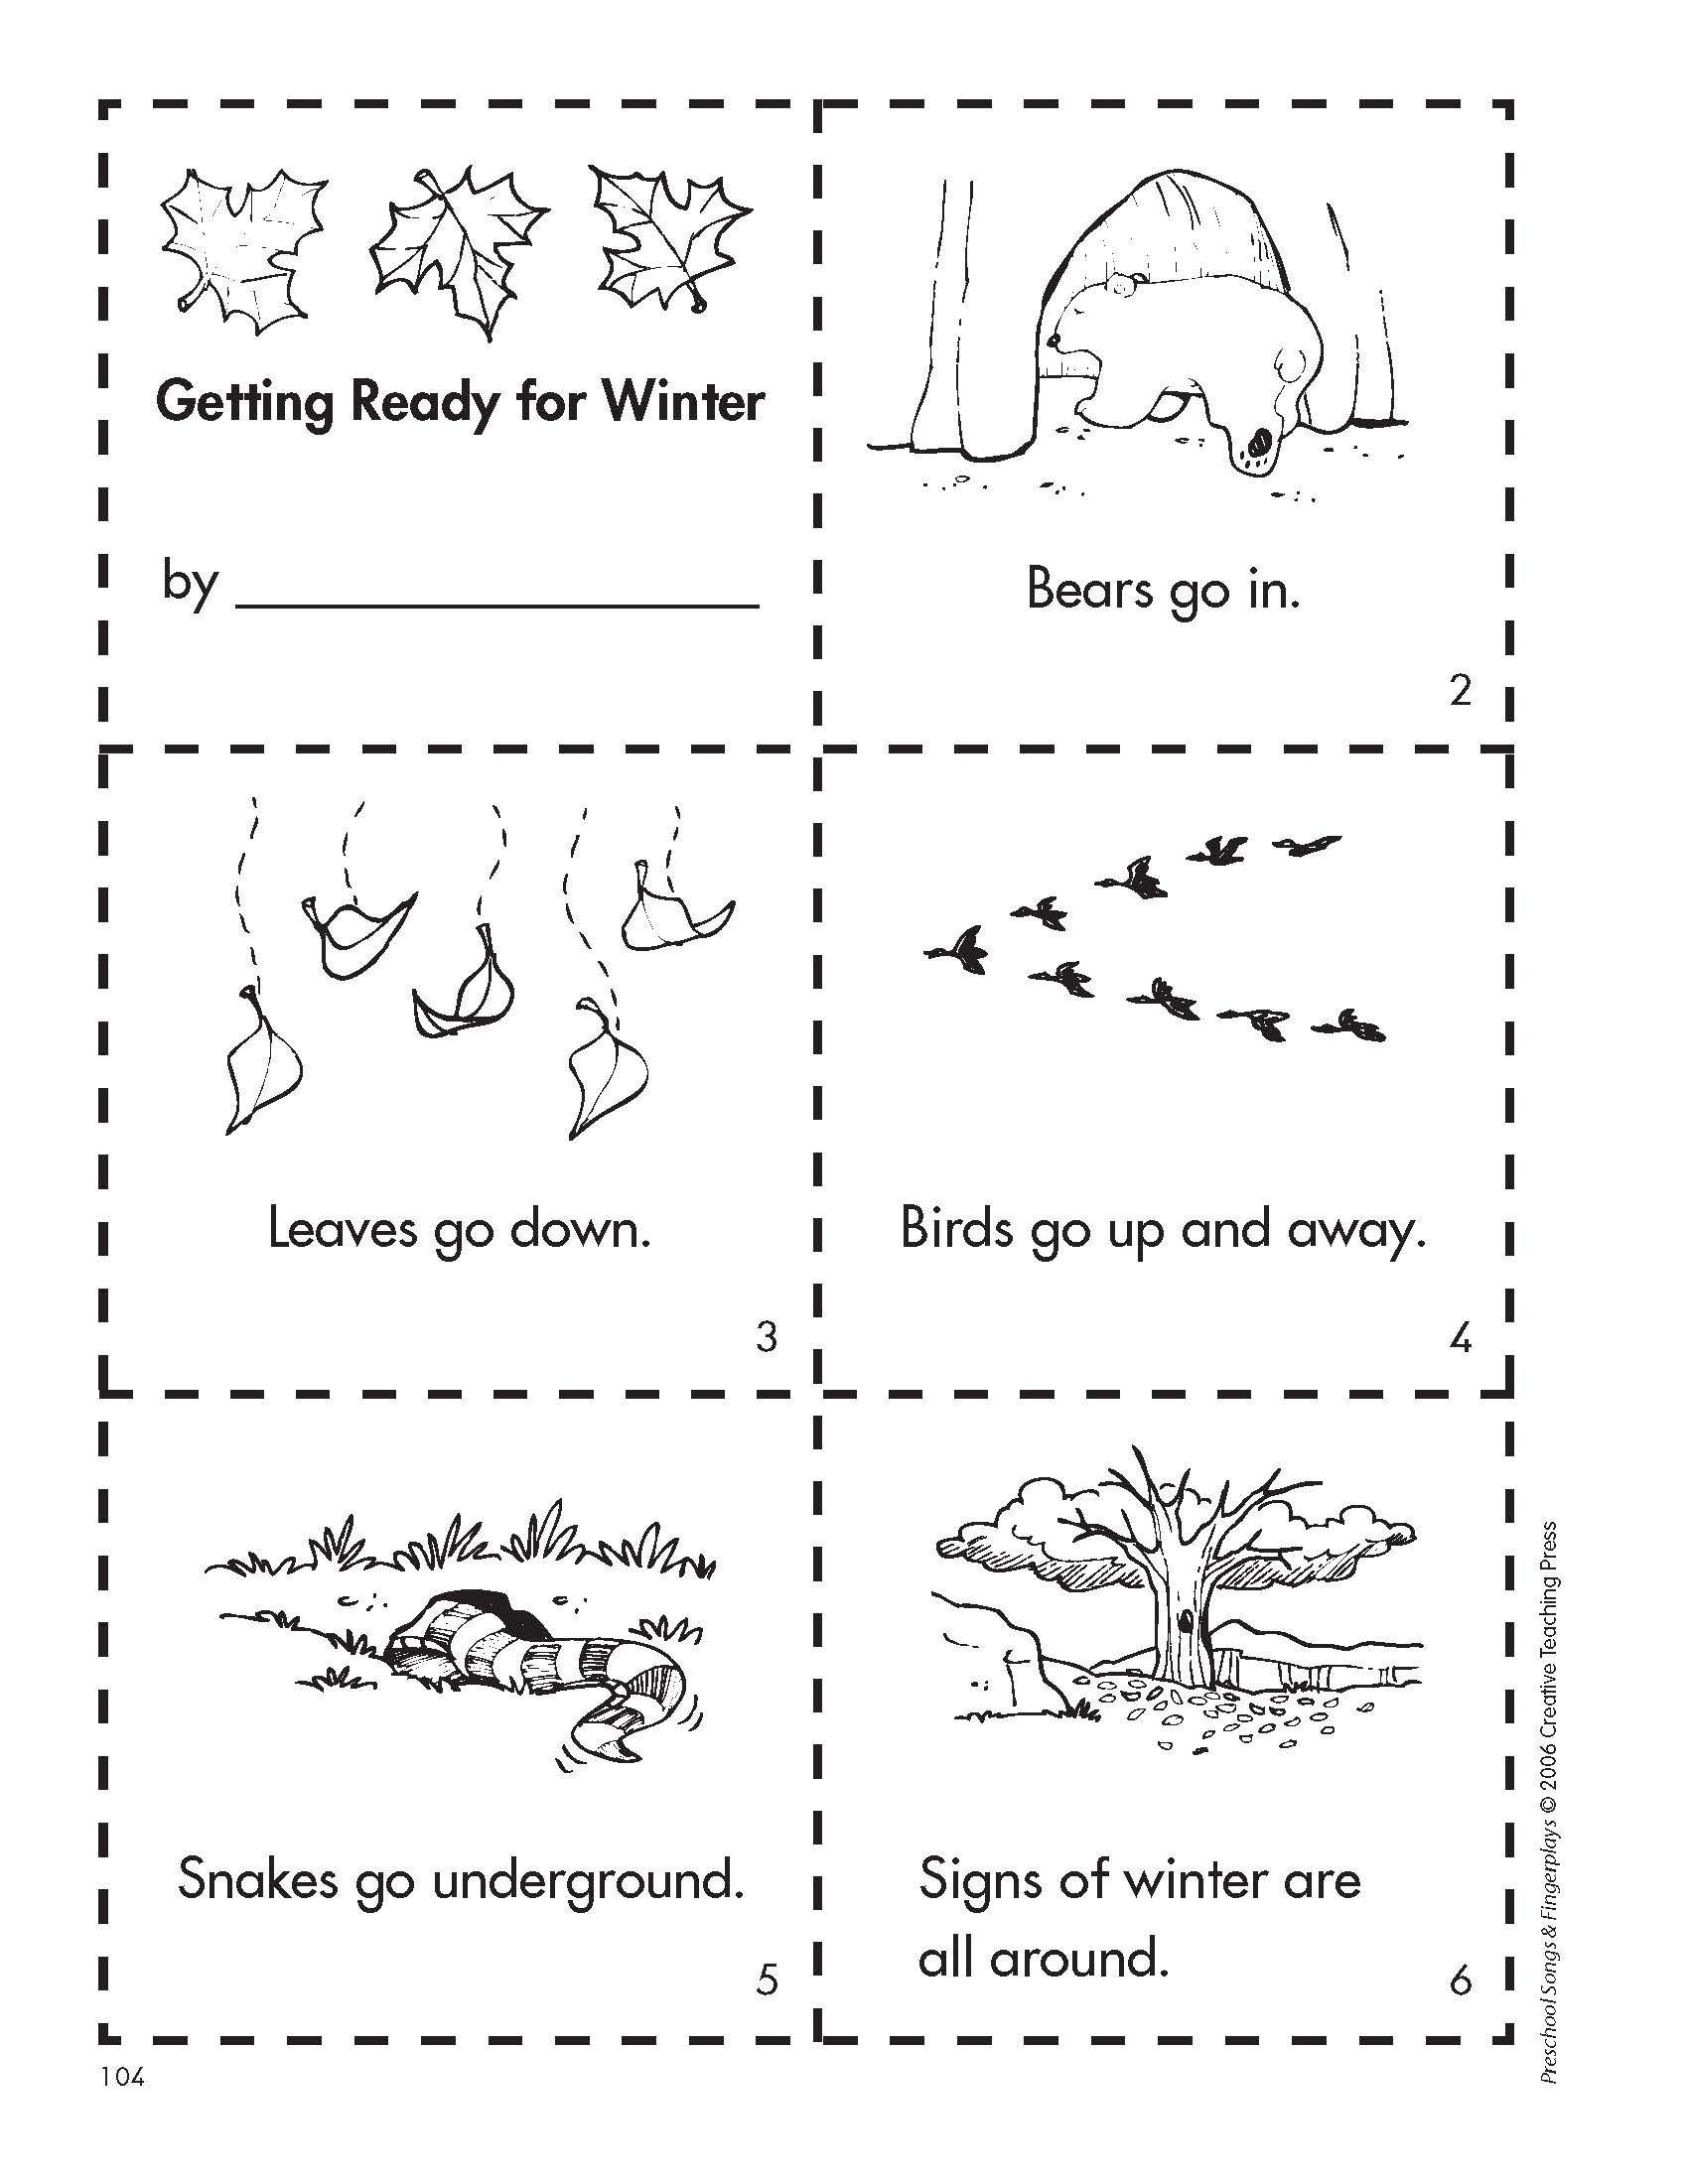 Free Habitat Worksheets Get Ready for Winter with This Free Minibook Reproducible